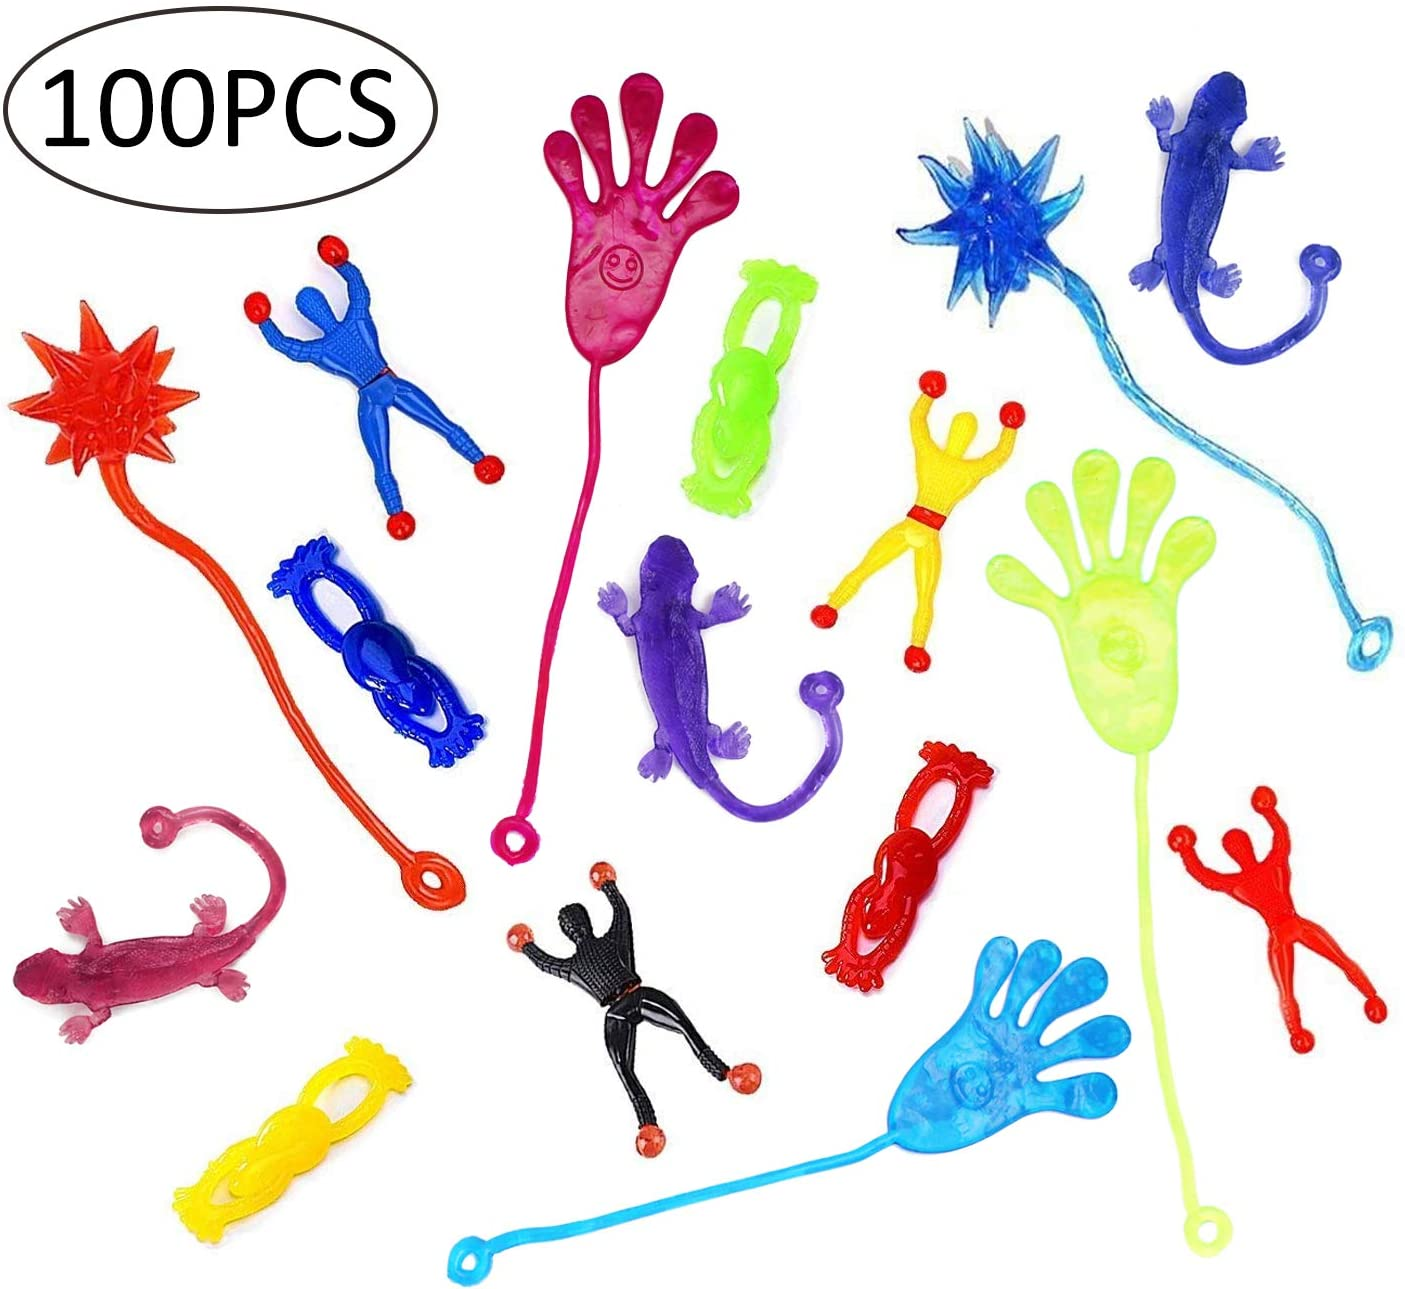 SKKSTATIONERY Bright Sticky Hands 100 Pcs, 5 Kinds, Party Favors, Christmas Halloween Gifts Goodies